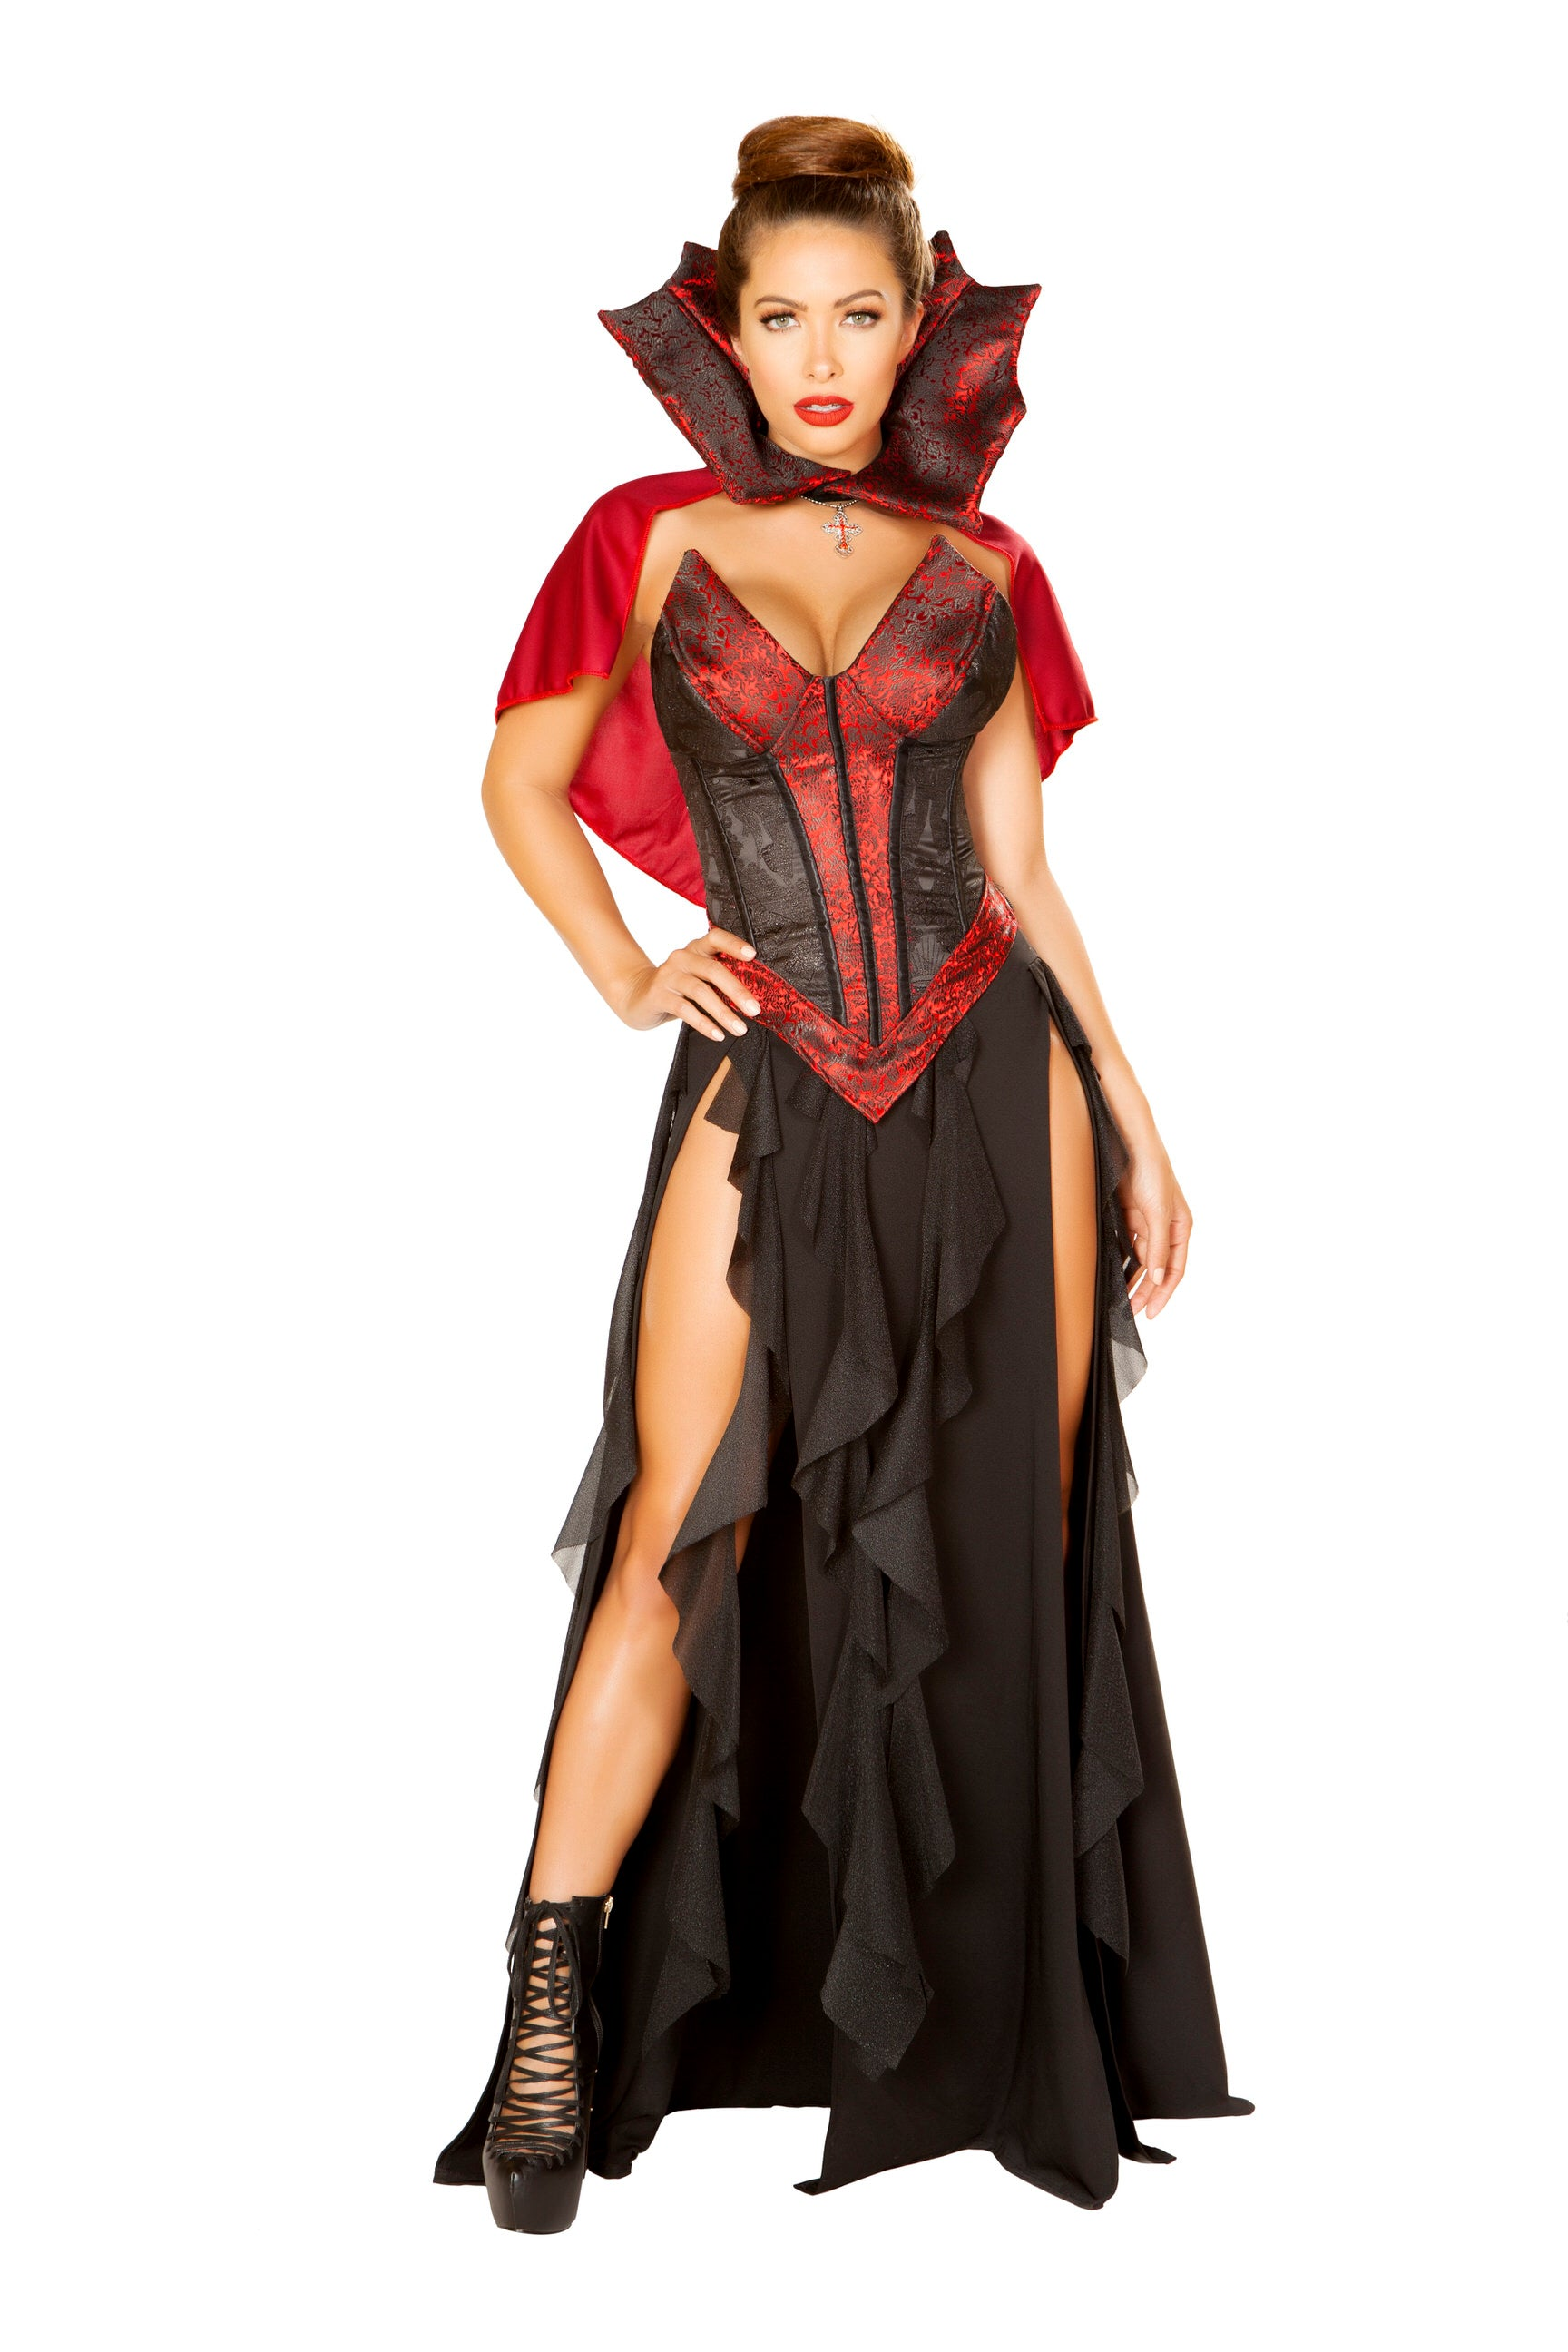 4864 - 3pc Blood Lusting Vampire ${description} | Roma Costume and Roma Confidential wholesale manufacturer of Women Apparel bulk world wide wholesale and world wide drop ship services for Adult Halloween Costumes, Sexy and Elegant Lingerie, Rave Clothing, Club wear, and Christmas Costumes. Costumes, Roma Costume, Inc., Roma Costume, Roma Confidential, Wholesale clothing, drop ship, drop ship service, Wholesale Lingerie, Wholesale Adult Halloween Costumes, Rave Clothing, EDM Clothing, Festival Wear, Christmas Costumes, Clubwear, Club wear.